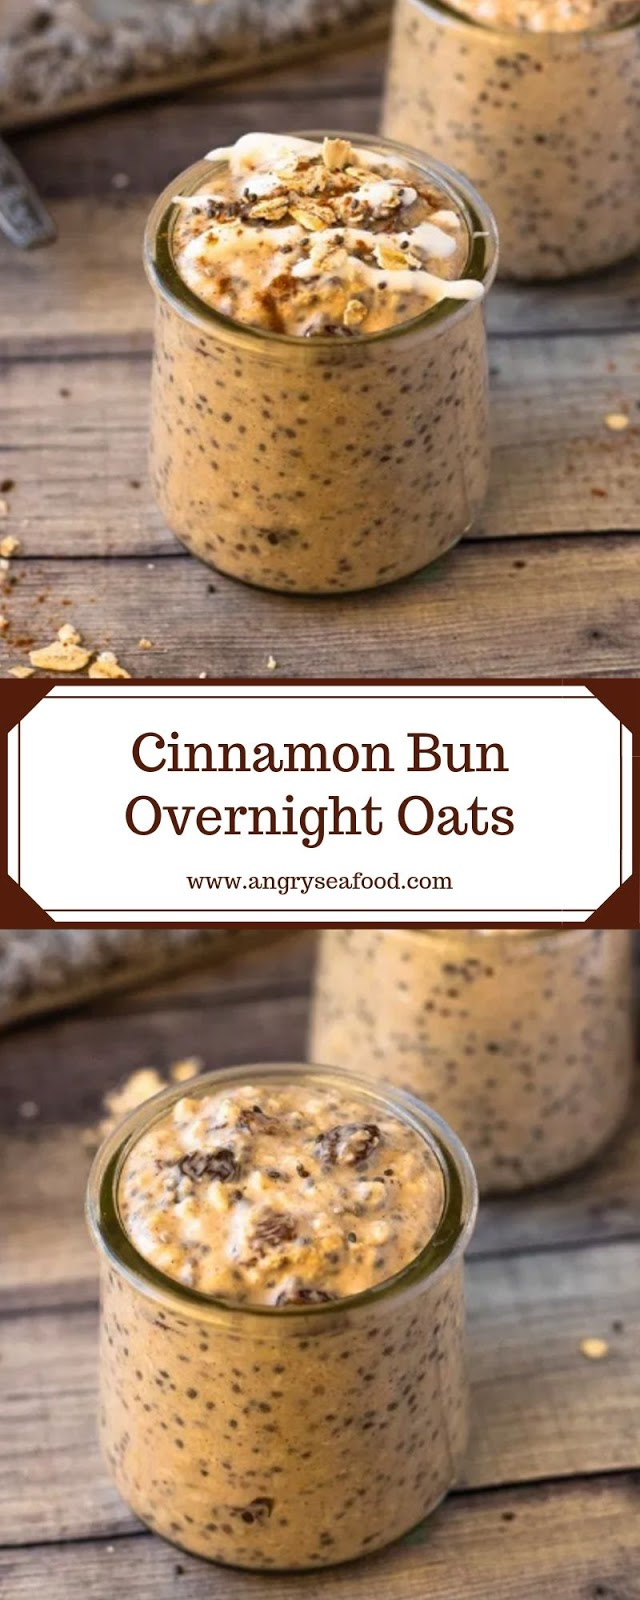 Cinnamon Bun Overnight Oats